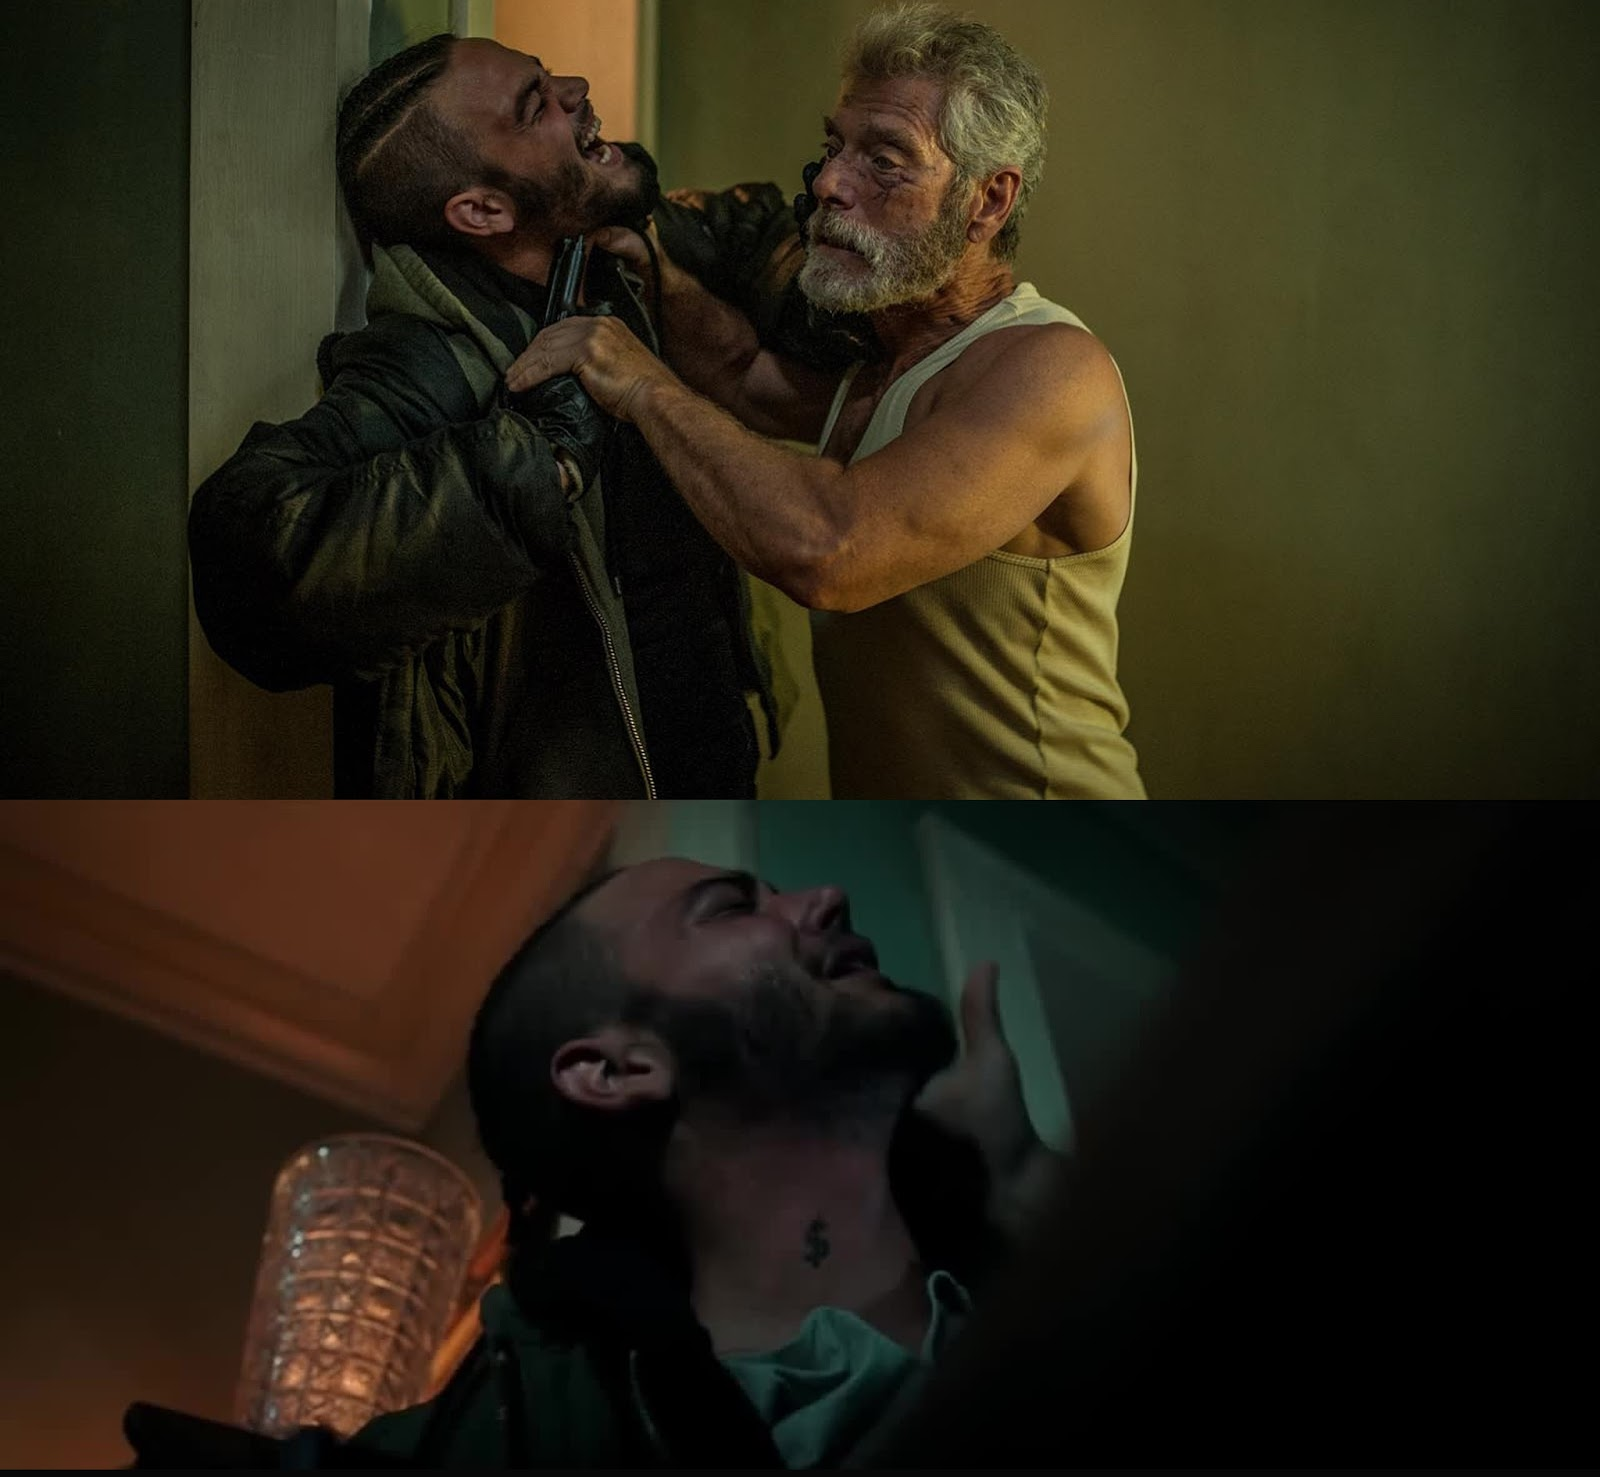 THE FINE ART DINER Dont Breathe Symbols Analysis